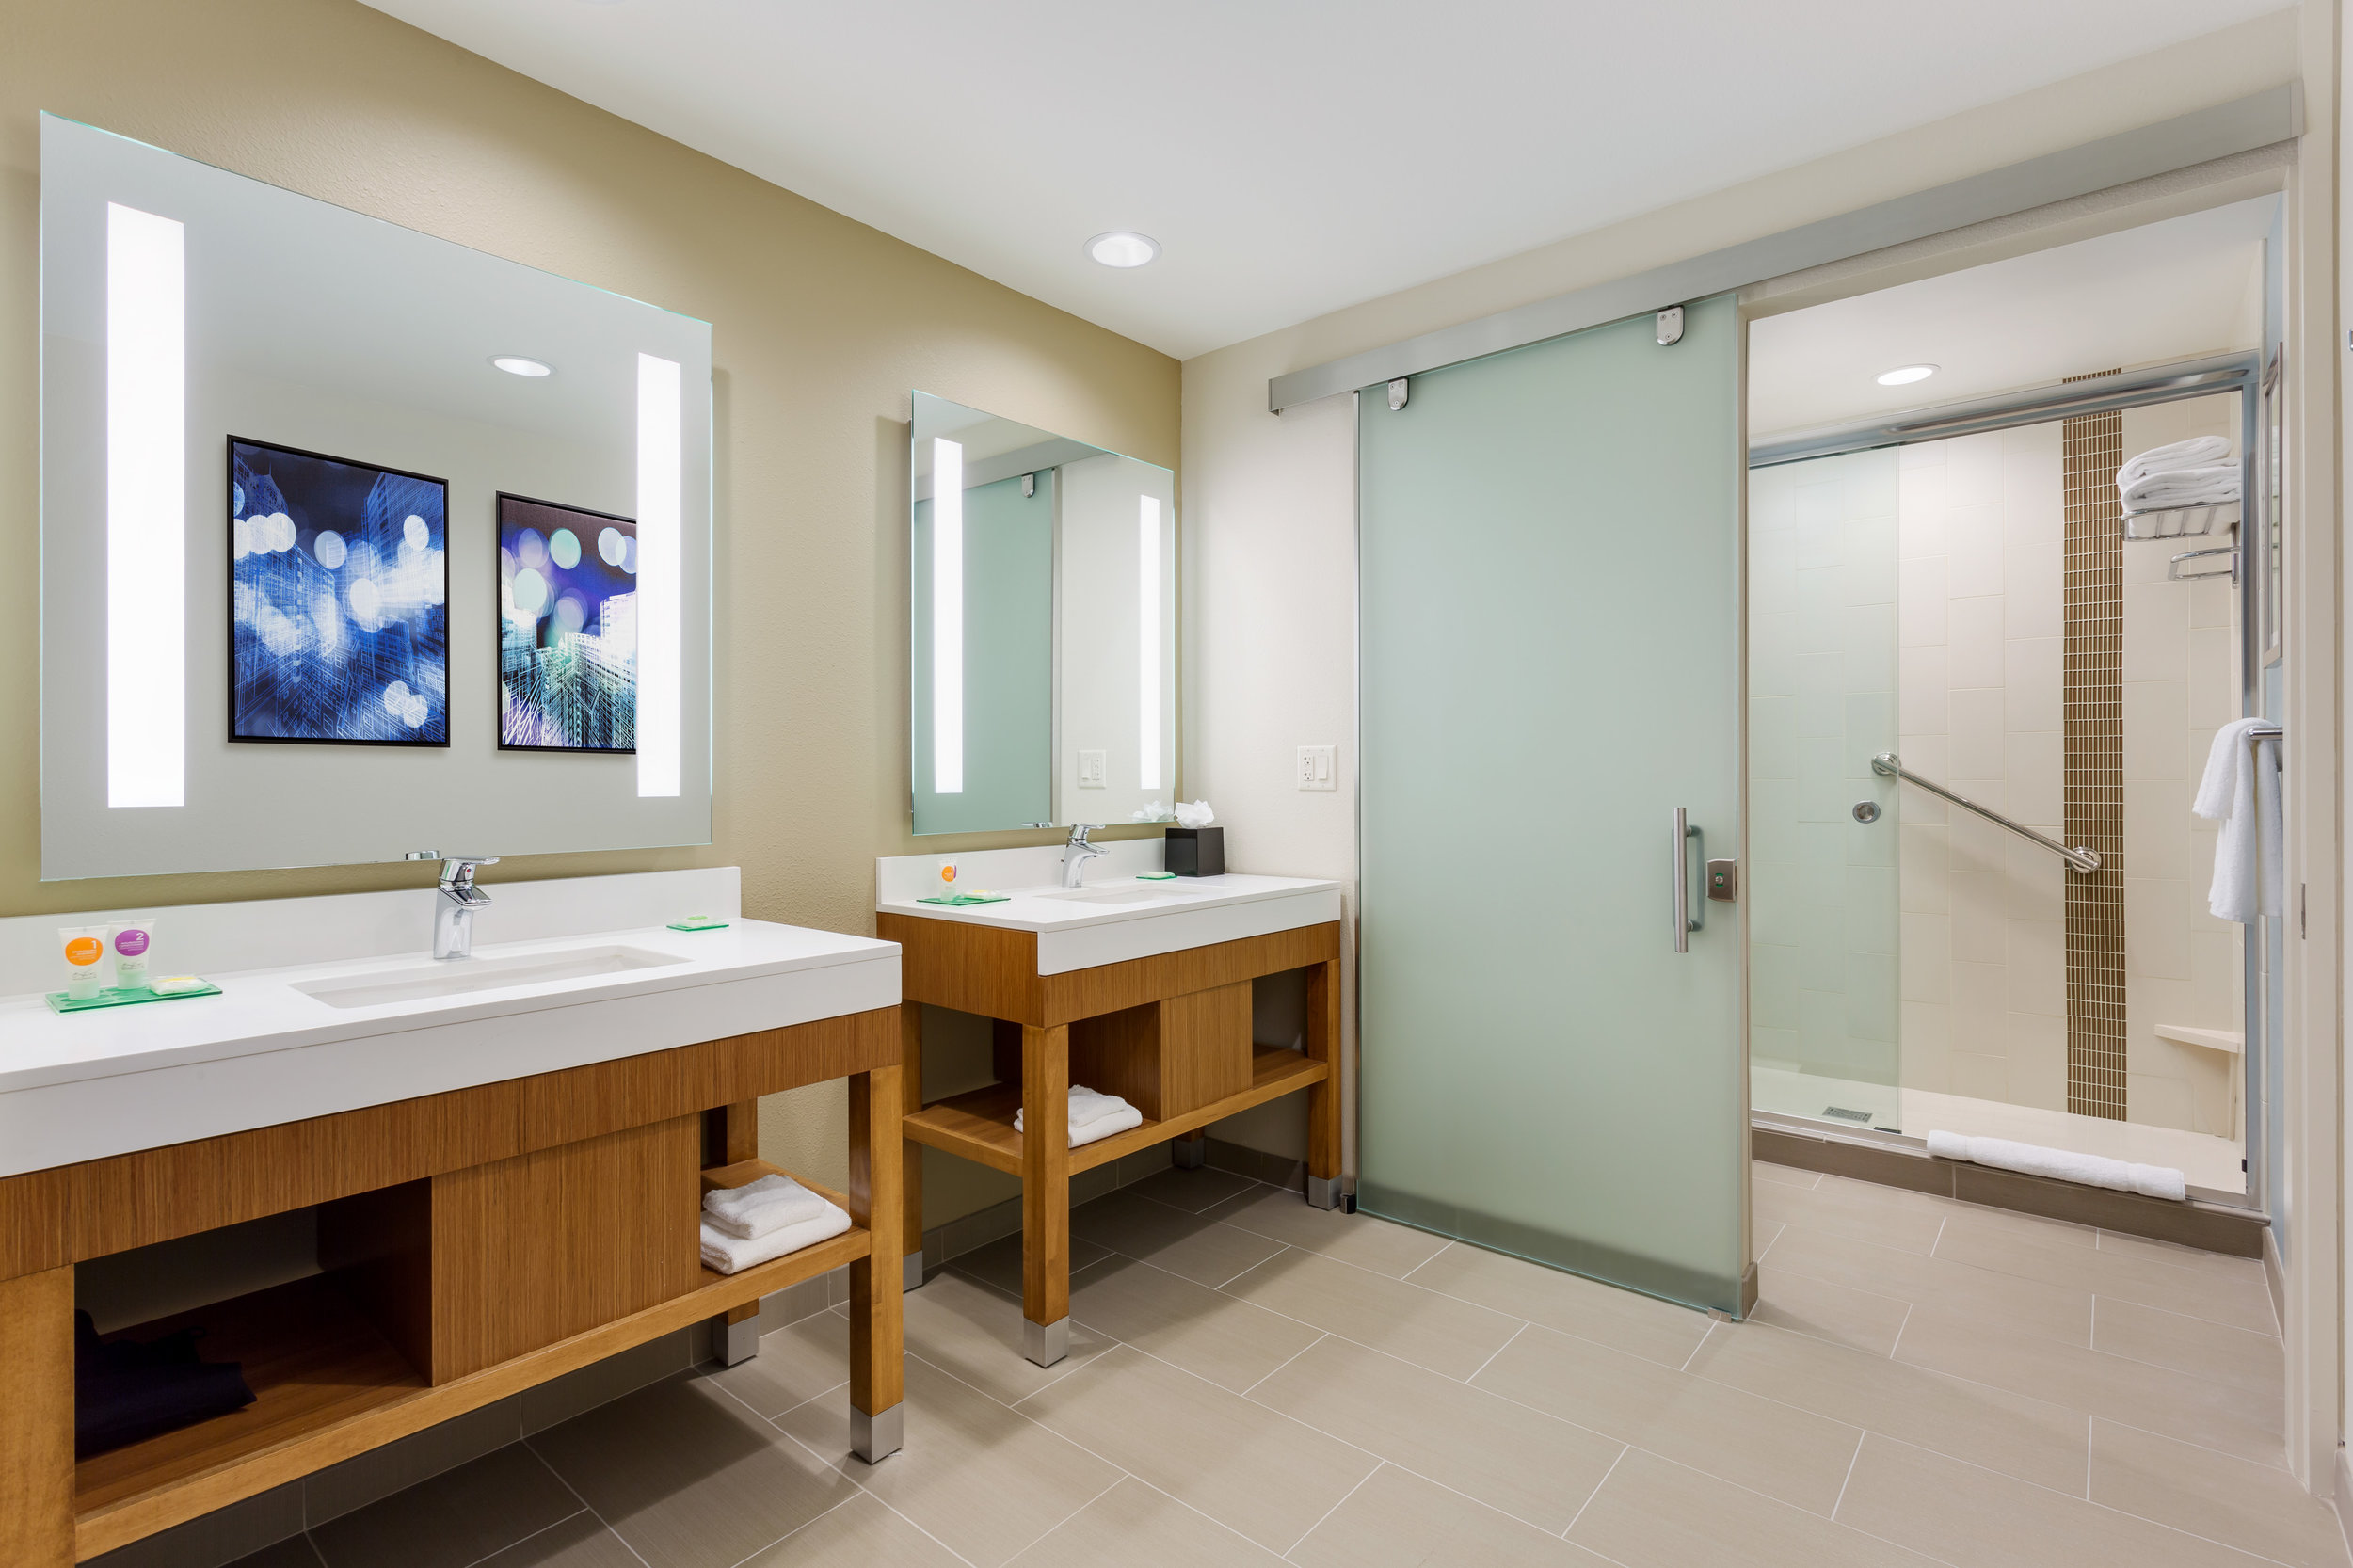 Hyatt Place Chicago Loop-Suite Bath.jpg